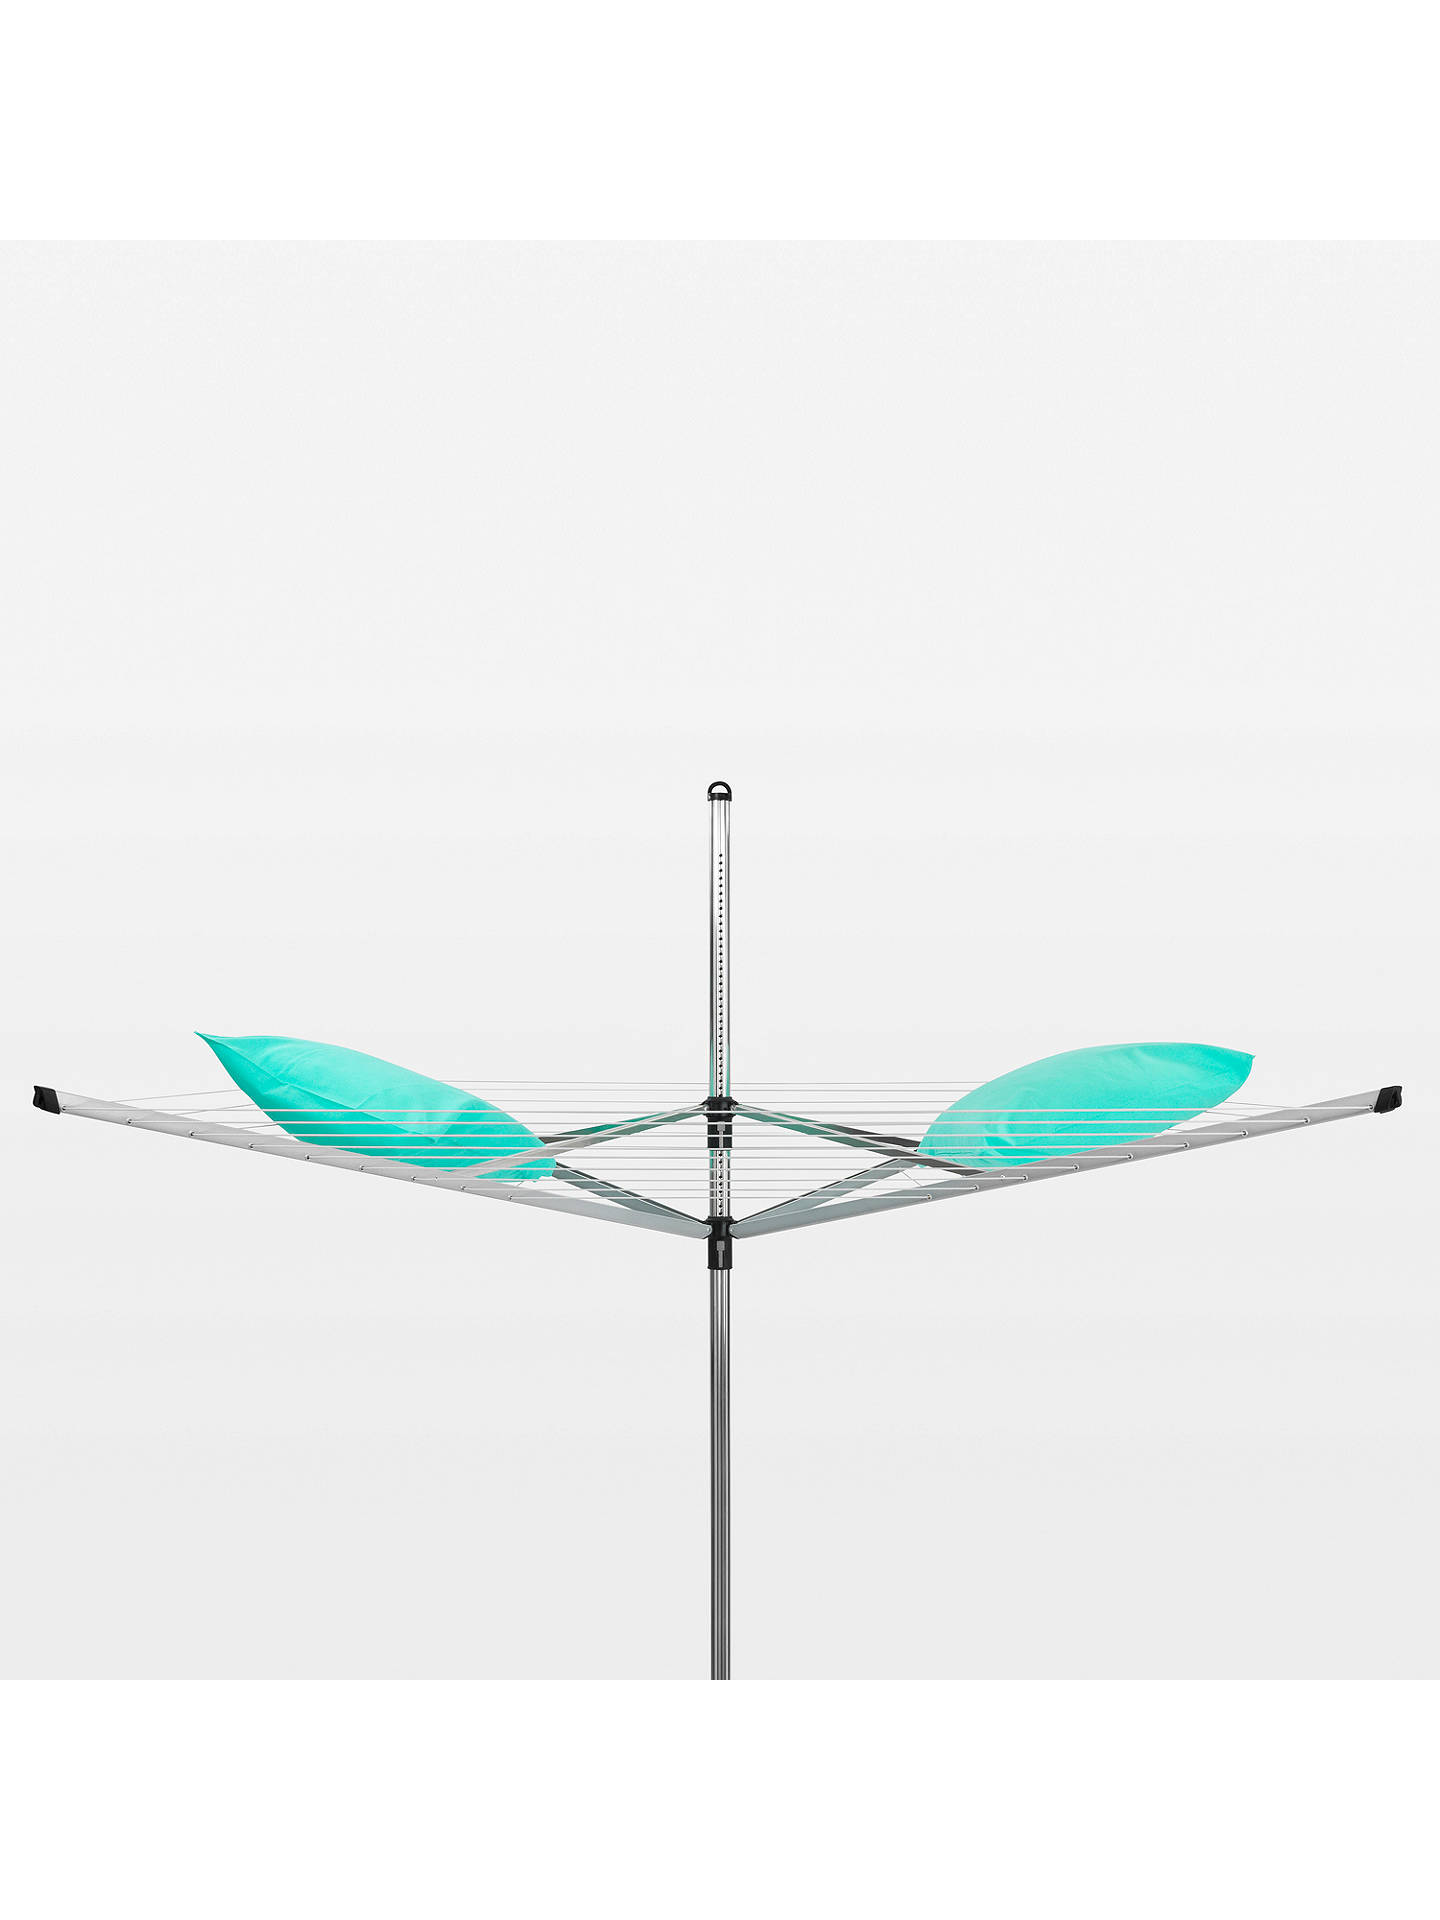 Brabantia Lift-O-Matic Rotary Clothes Outdoor Airer Washing Line, with Soil  Spear and Cover, 60m